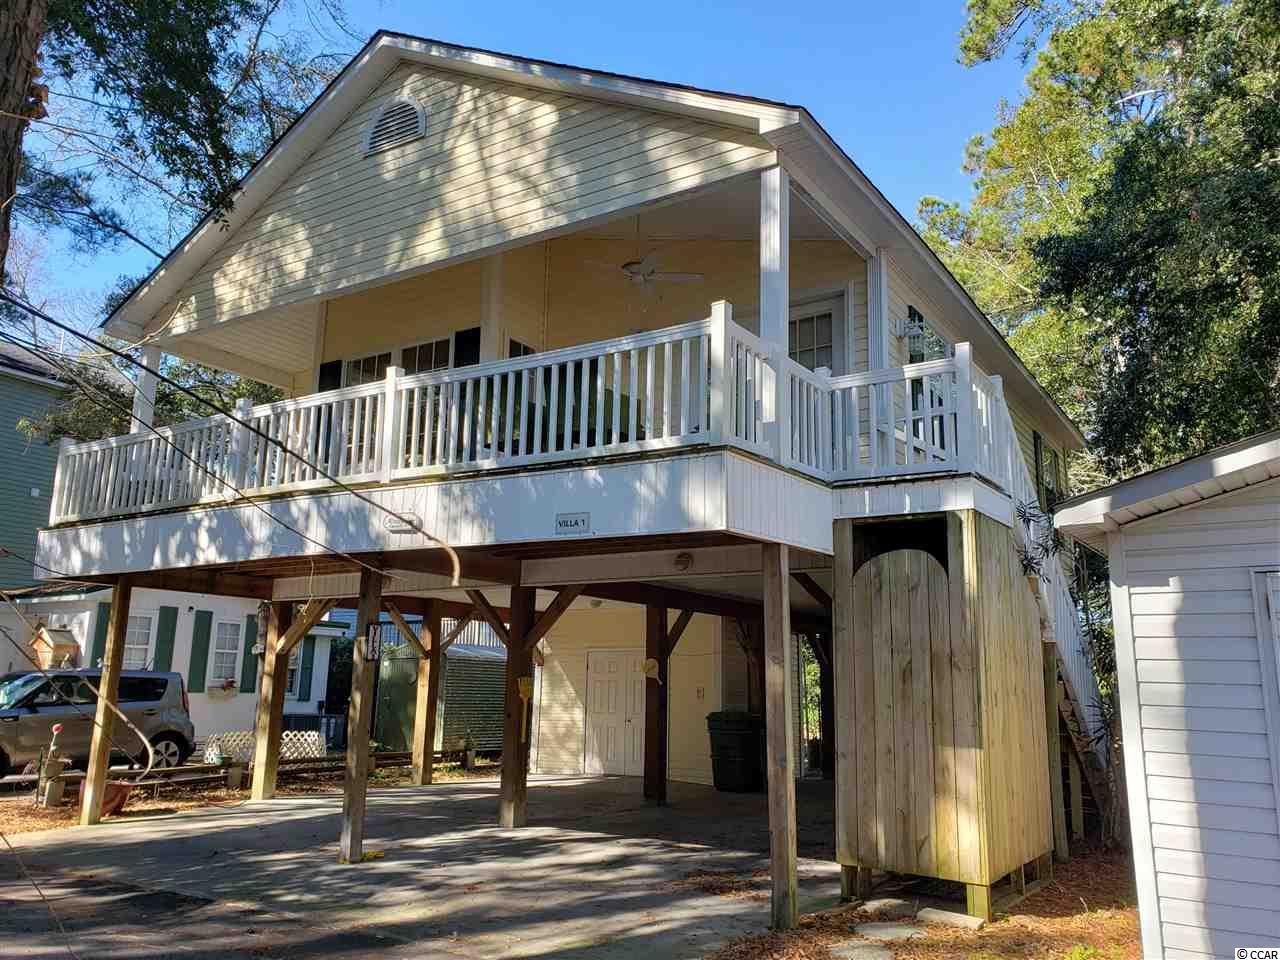 This charming and lovingly maintained beach home is located in Ocean Lakes Campground which is located on 310 acres of oceanfront property. This  an all season vacation campground with all season activities.   Everything you could possiby need or want to do are within the grounds! From your very own waterpark, indoor pool (heated in winter) mini golf, basketball court, volleyball, golf cart and bicycle rentals, cafe, grocery store to 19 beach access points the list goes on and on. This 800 square foot open floor plan makes this home absolutely comfy and cozy and a vacationers dream come true. 3 bedroom, 2 full bath, kitchen, dining, living area, laundry with stackable washer & dryer that is included, spacious front porch, 2 car parking underneath, outdoor shower, large double door storage room is large enough for parking your golf cart. The entry stairs were newly constructed in September of 2019. You will be nestled on a private road with a wooded view from your large front porch yet moments from beach, amenities , dining, shopping and more! Town is golf cart friendly. A perfect 2nd, permanent , vacation, rental or investment property. This is a one owner home.  The opportunities for this one are endless! This home comes fully furnished. Call for your showing today!